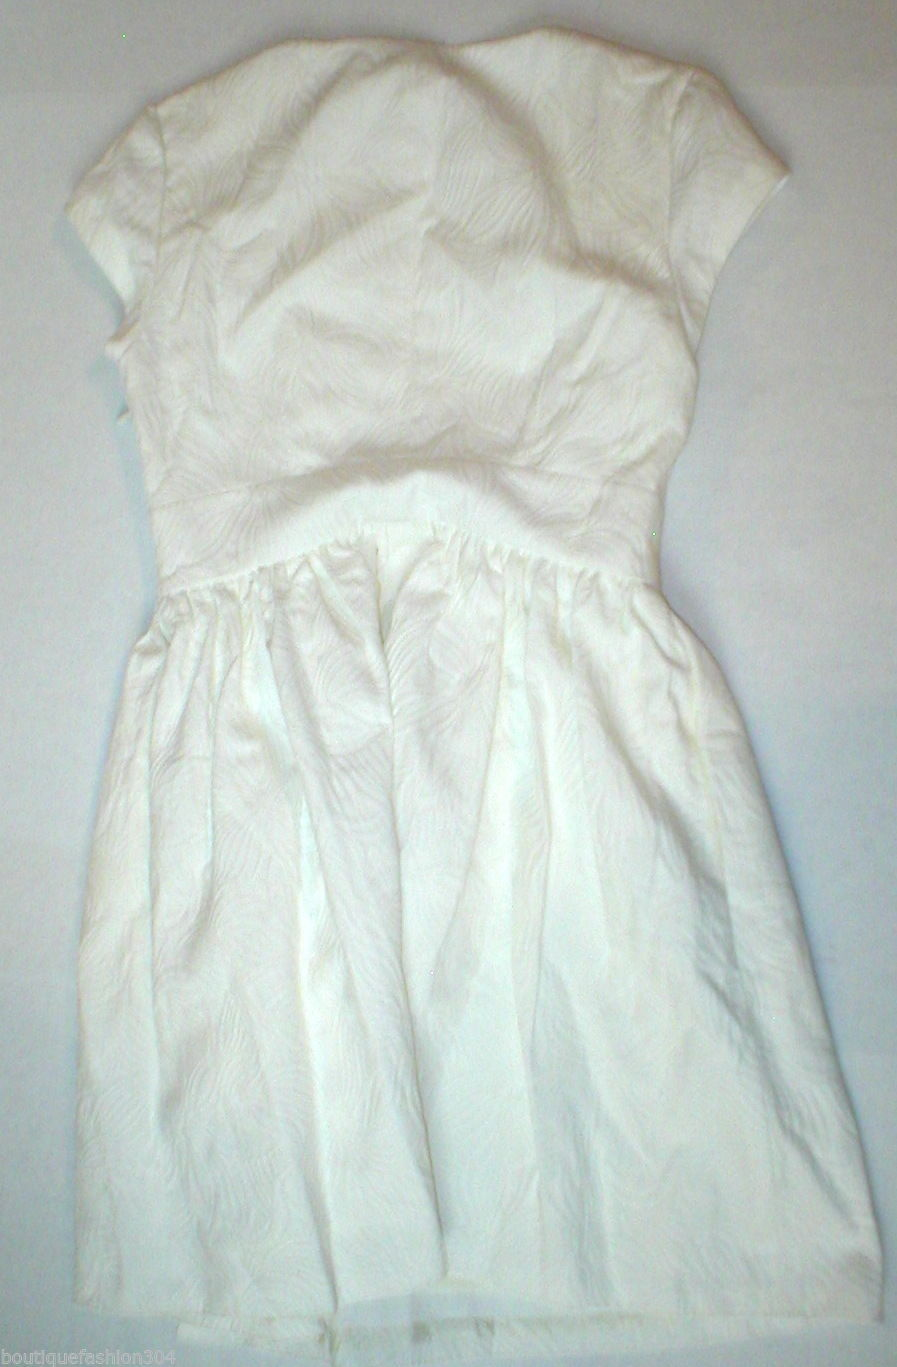 New Juicy Couture Dress Short Womens 4 NWT $198 Off White Floral Brocade Textur image 3